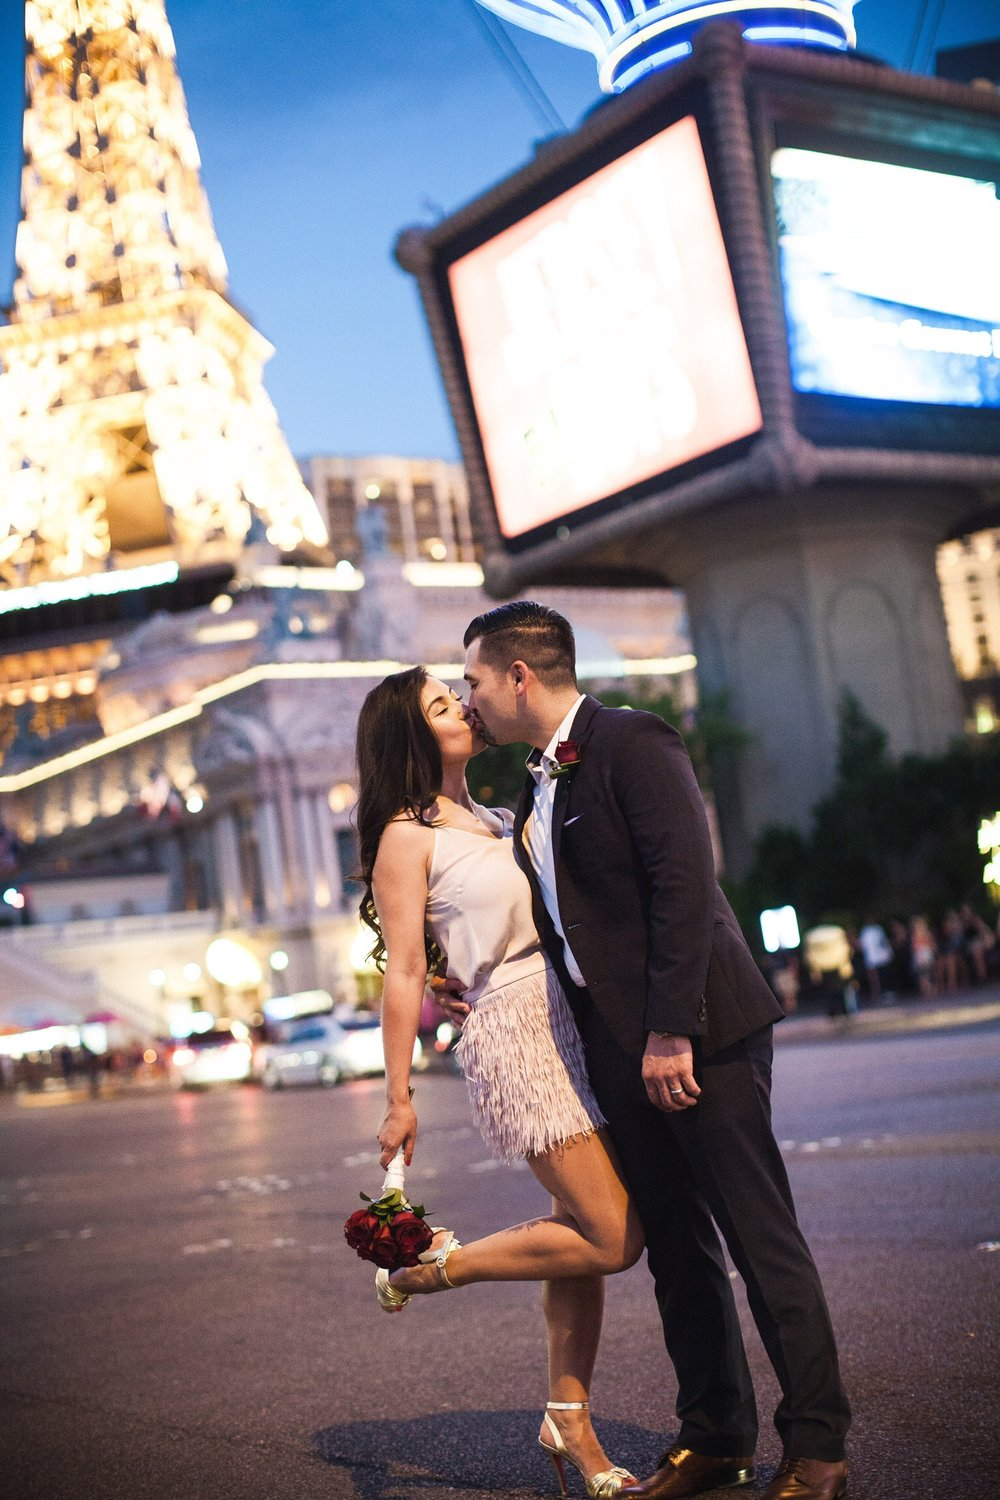 Vegas is for lovers. Why not get married here — or renew your vows like Herminia and Brandon did?